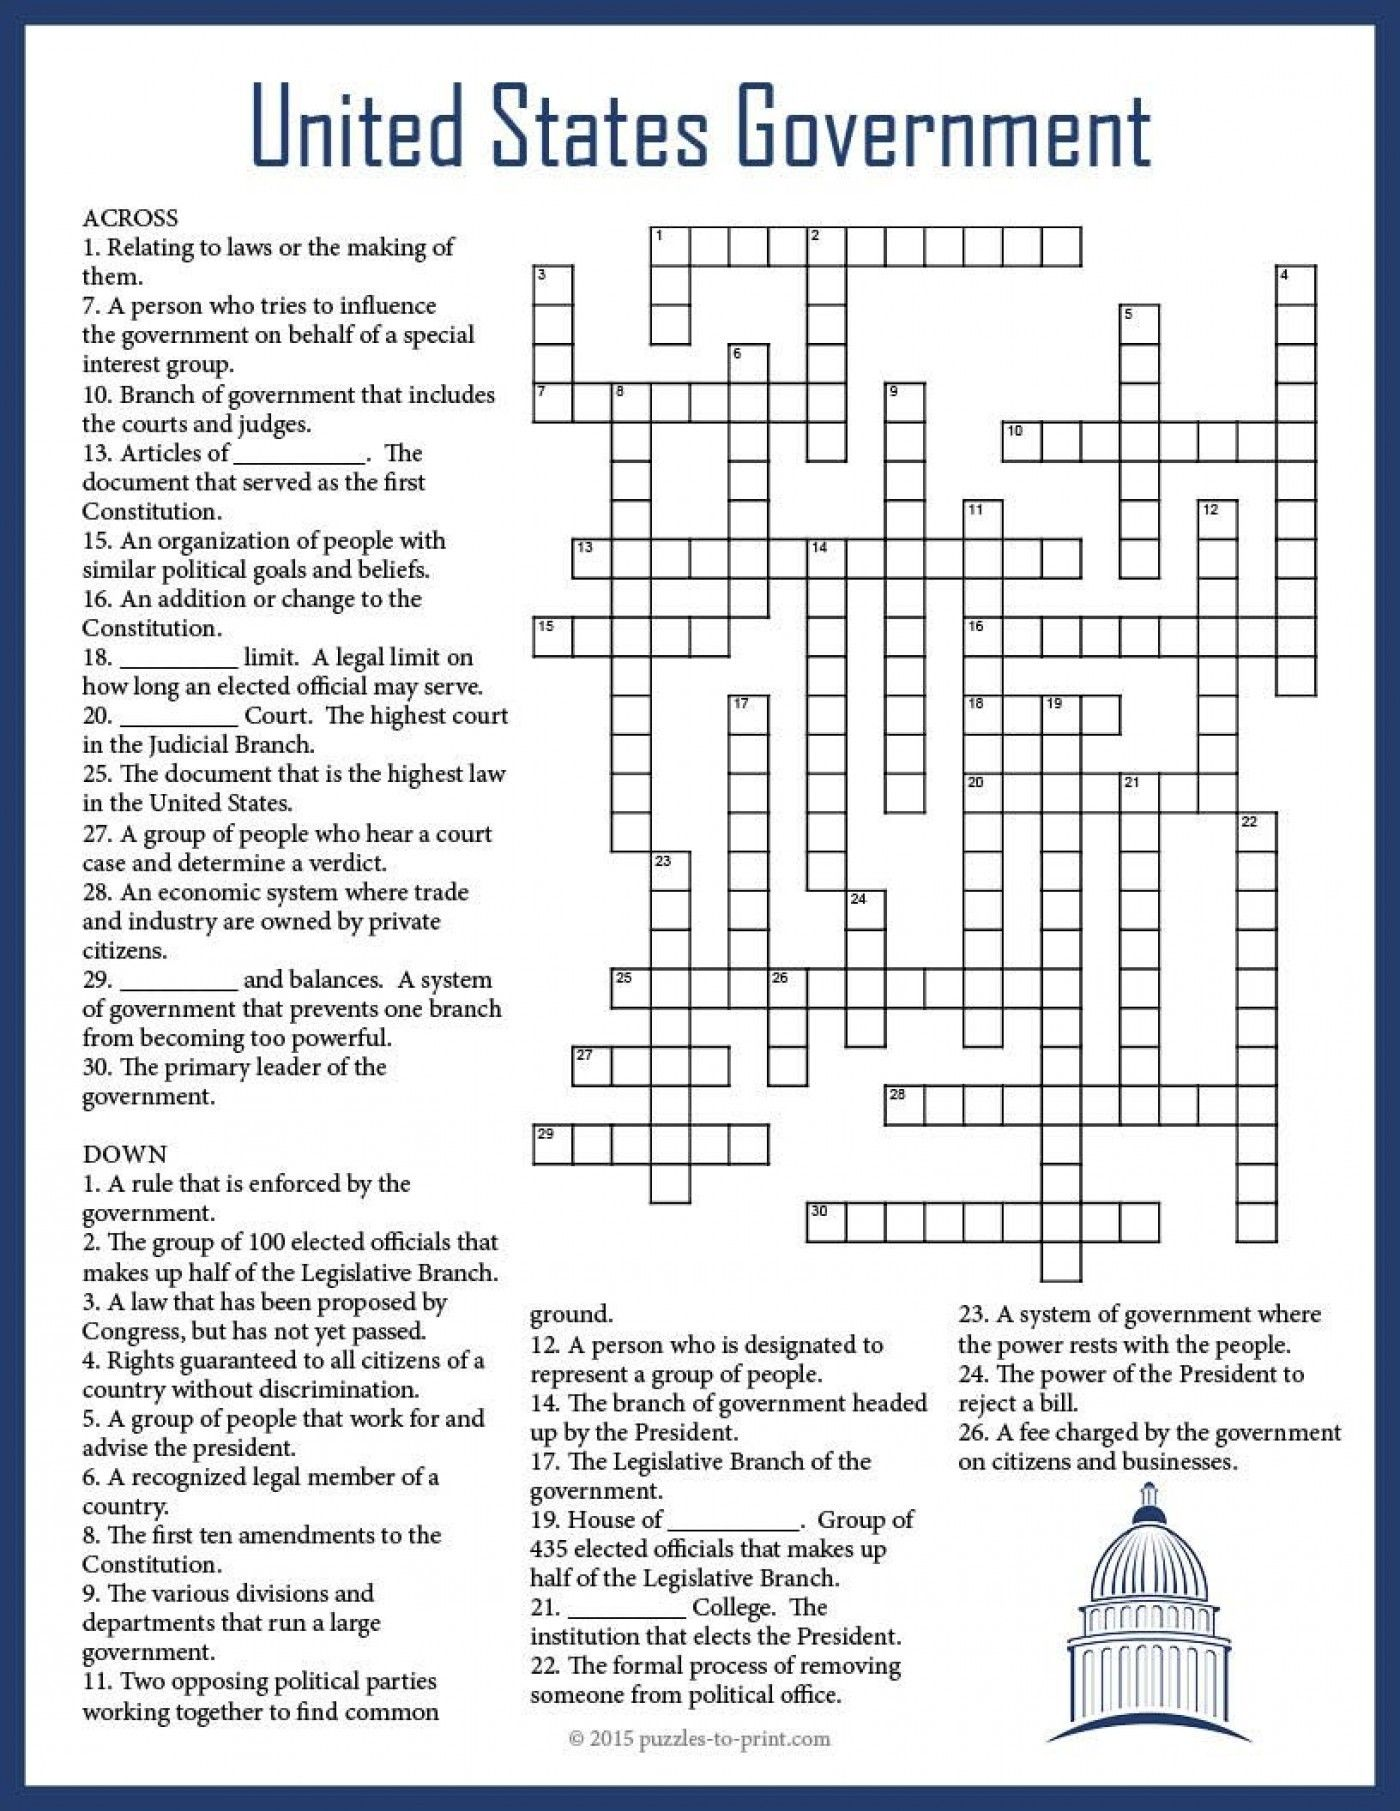 6 New Word Puzzles Brain Teasers Worksheets Di